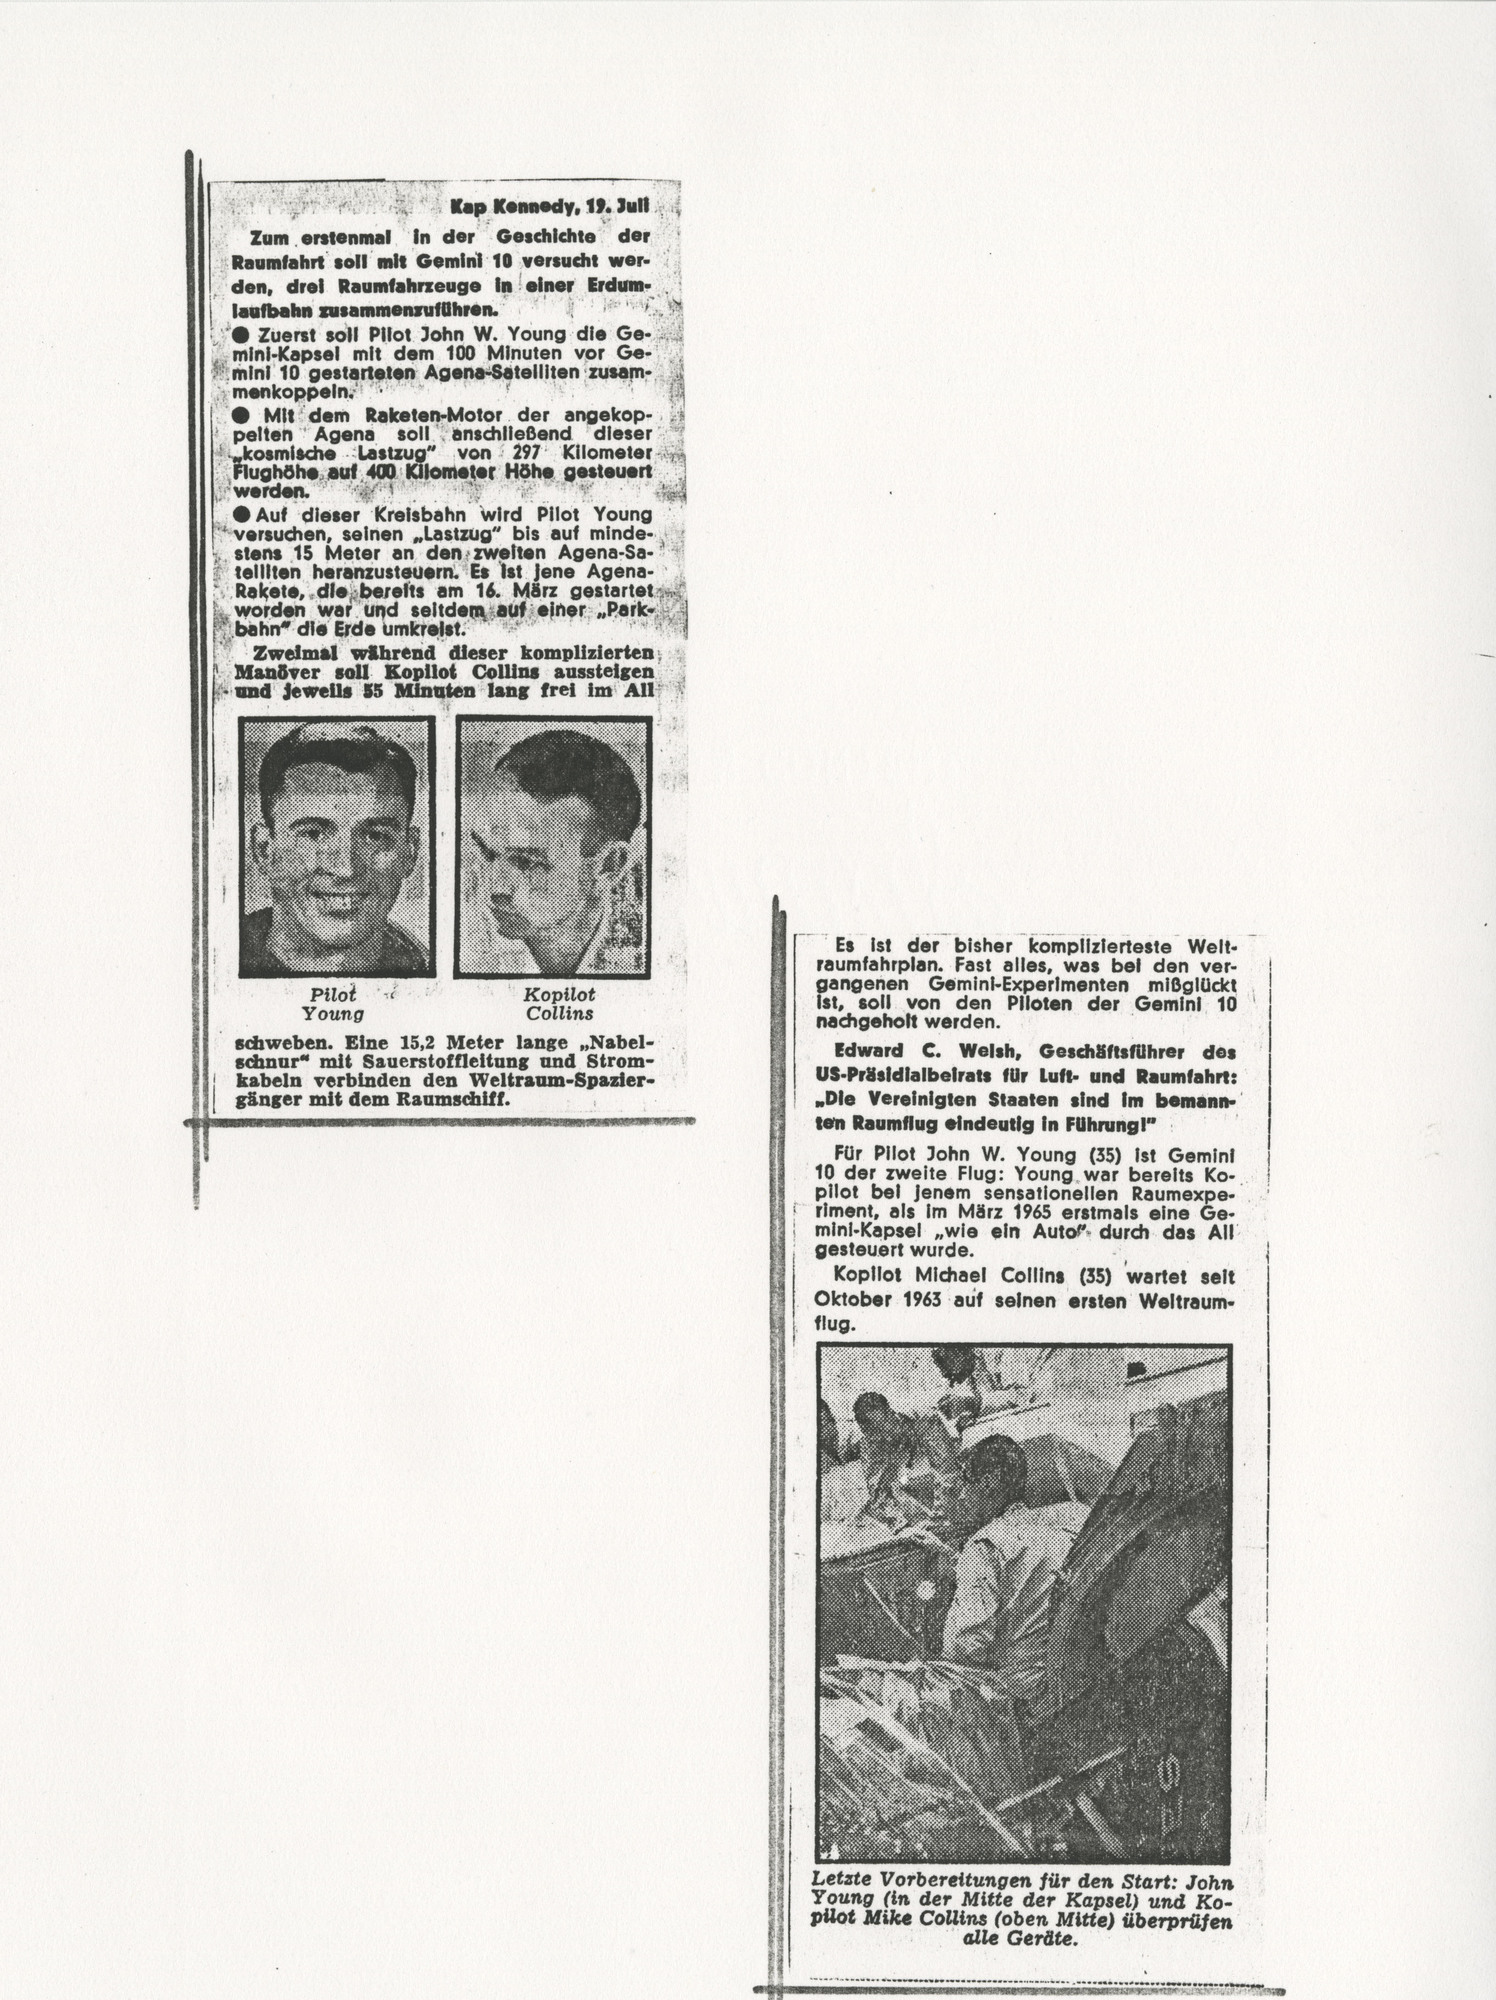 http://spec.lib.vt.edu/pickup/Omeka_upload/Ms1989-029_B07_F3_Clippings_1966_0719_02.jpg